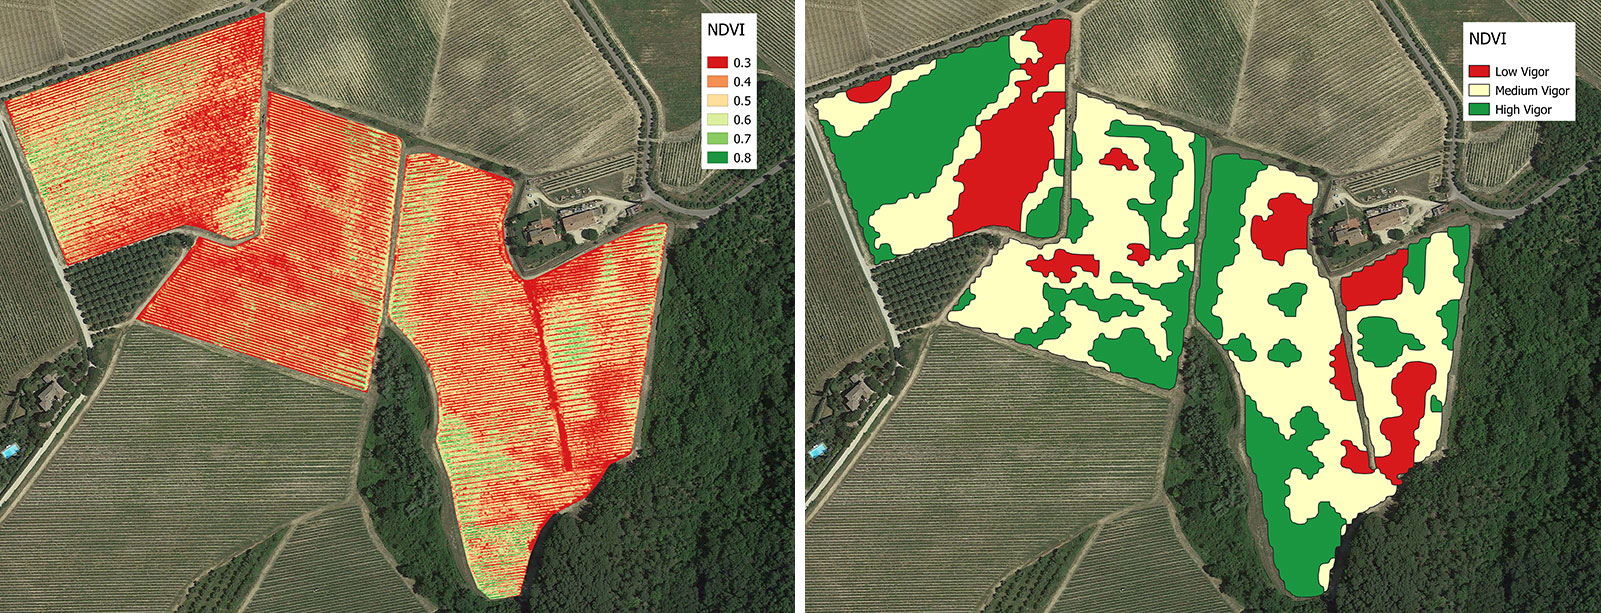 Full vineyard vigor map (NDVI), vineyard zonation map in 3 vigor classes